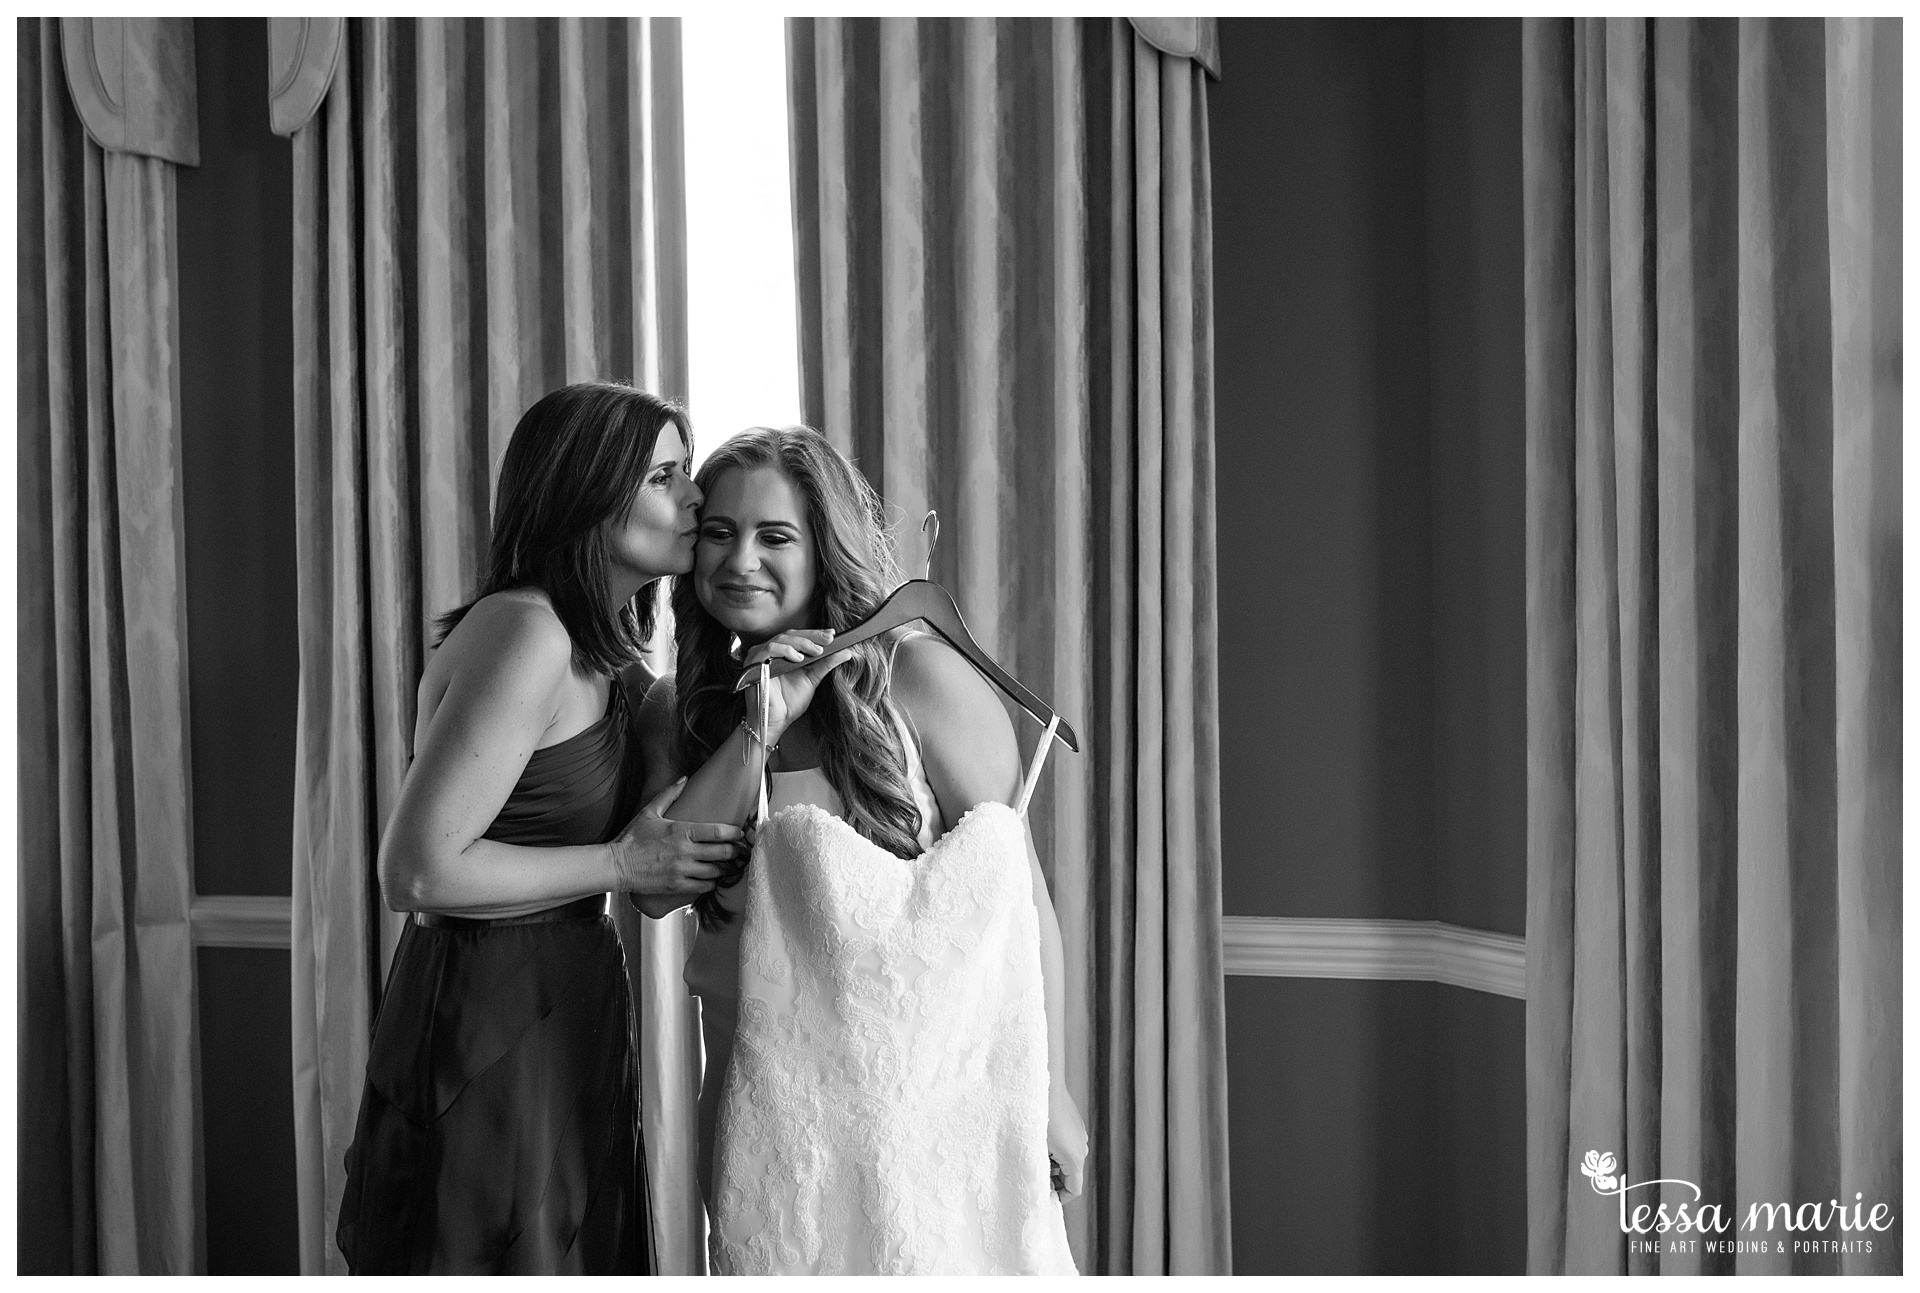 tessa_marie_weddings_legacy_story_focused_wedding_pictures_atlanta_wedding_photographer_0065